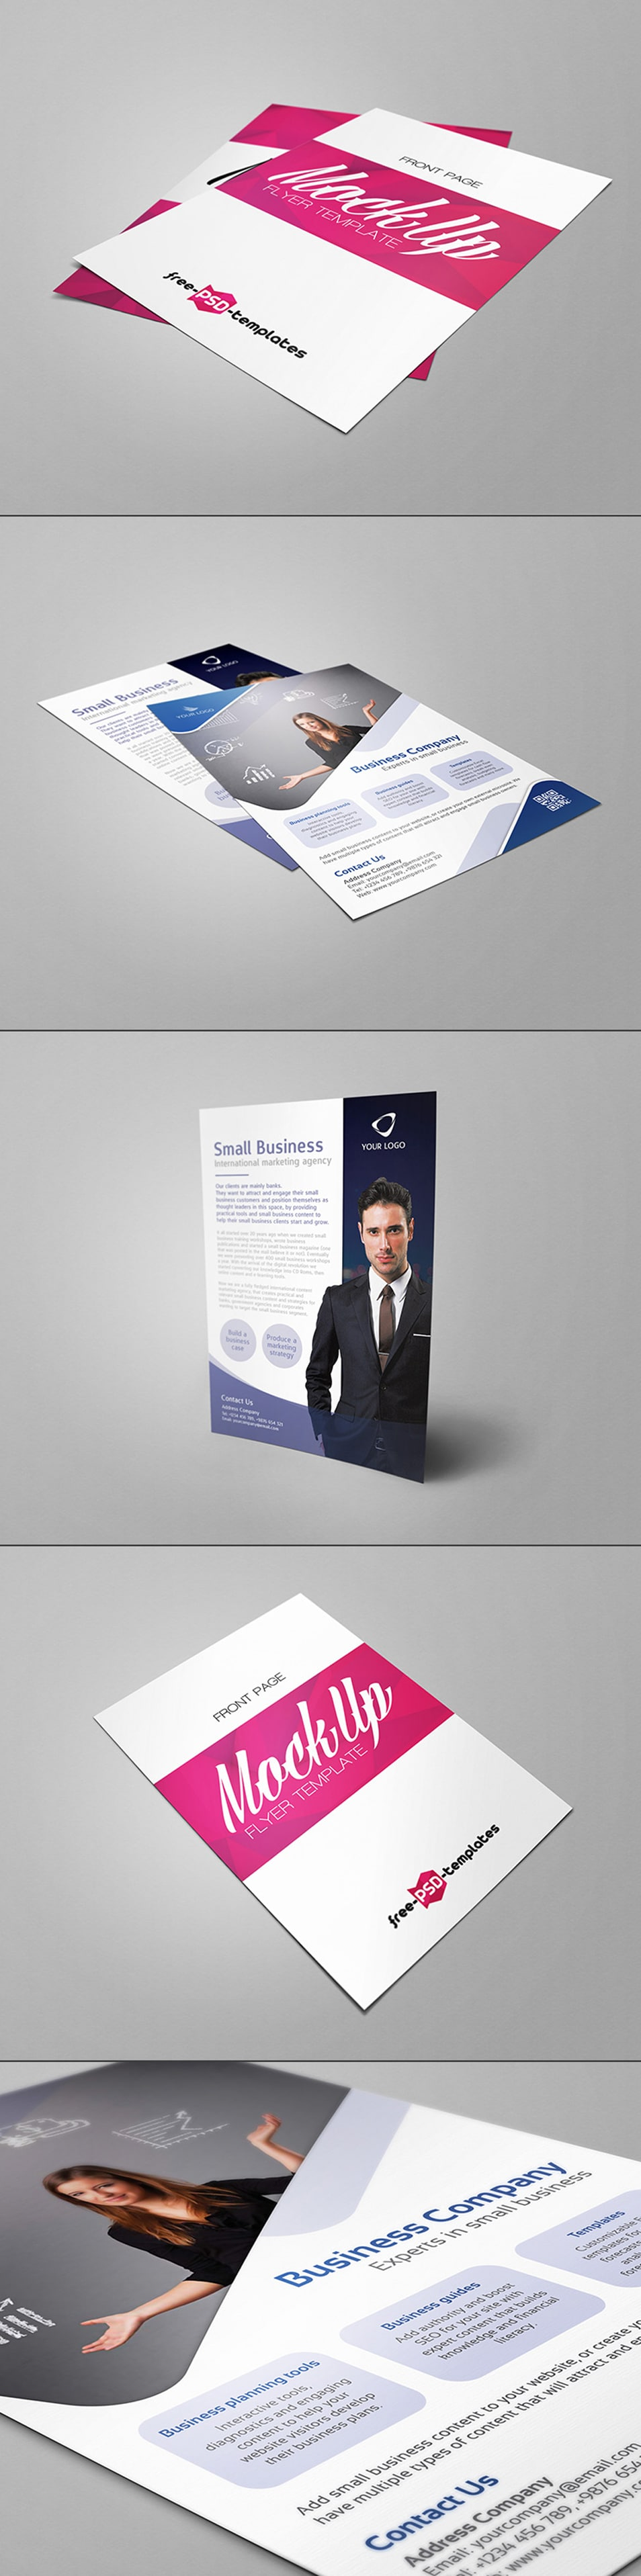 Free Flyer Mock-up in PSD